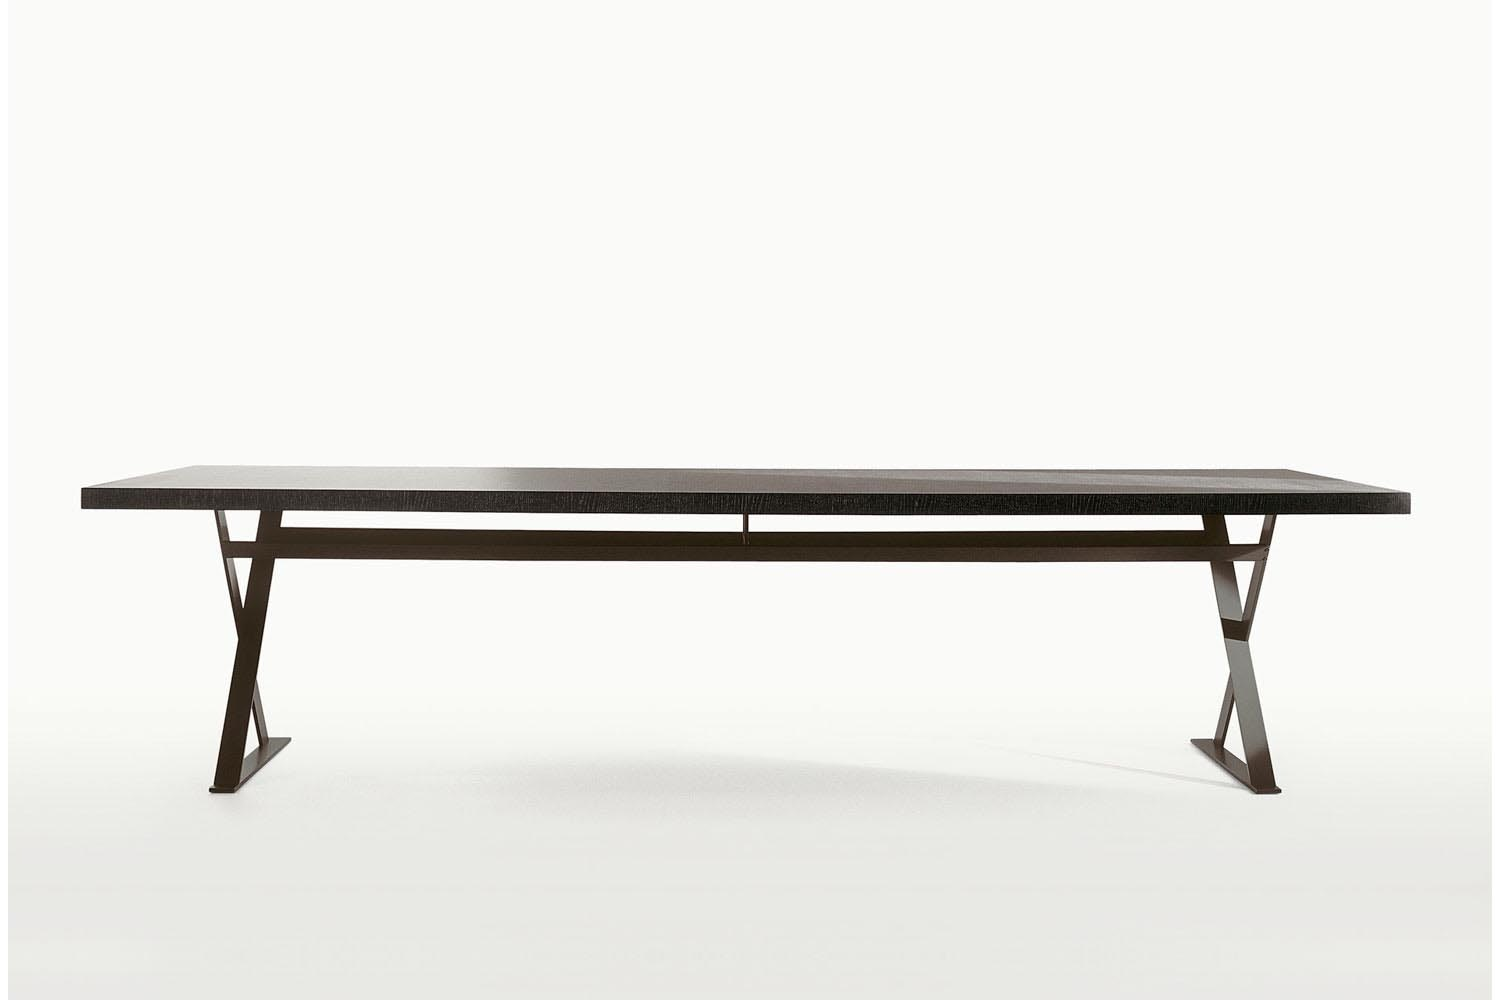 Max Table by Antonio Citterio for Maxalto